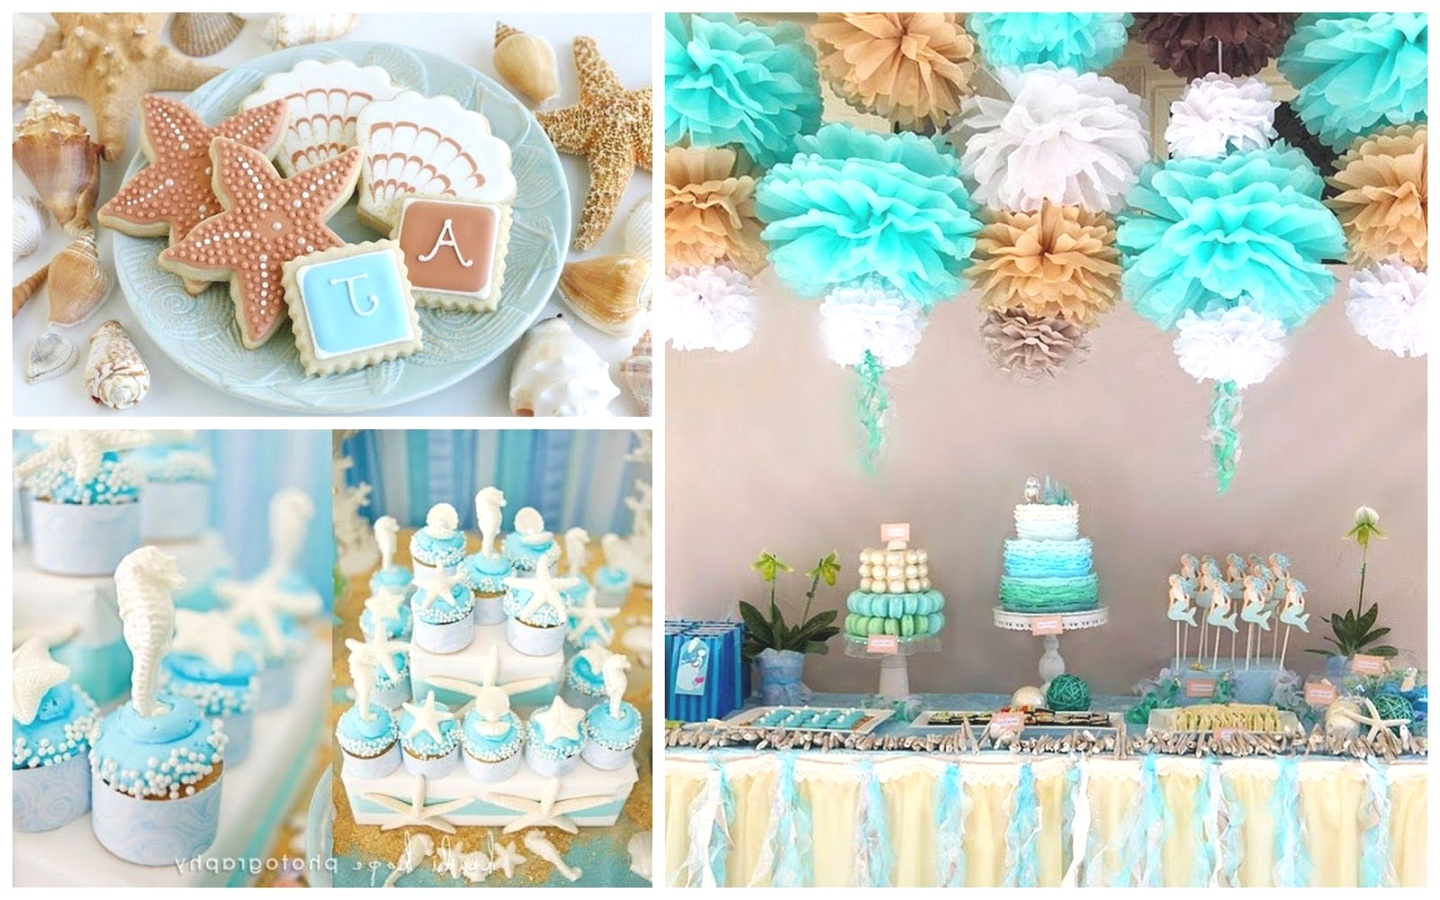 Fancy Beach Theme Party Decorations Pinterest Pinterest Beach Party within Beach Theme Party Decorations